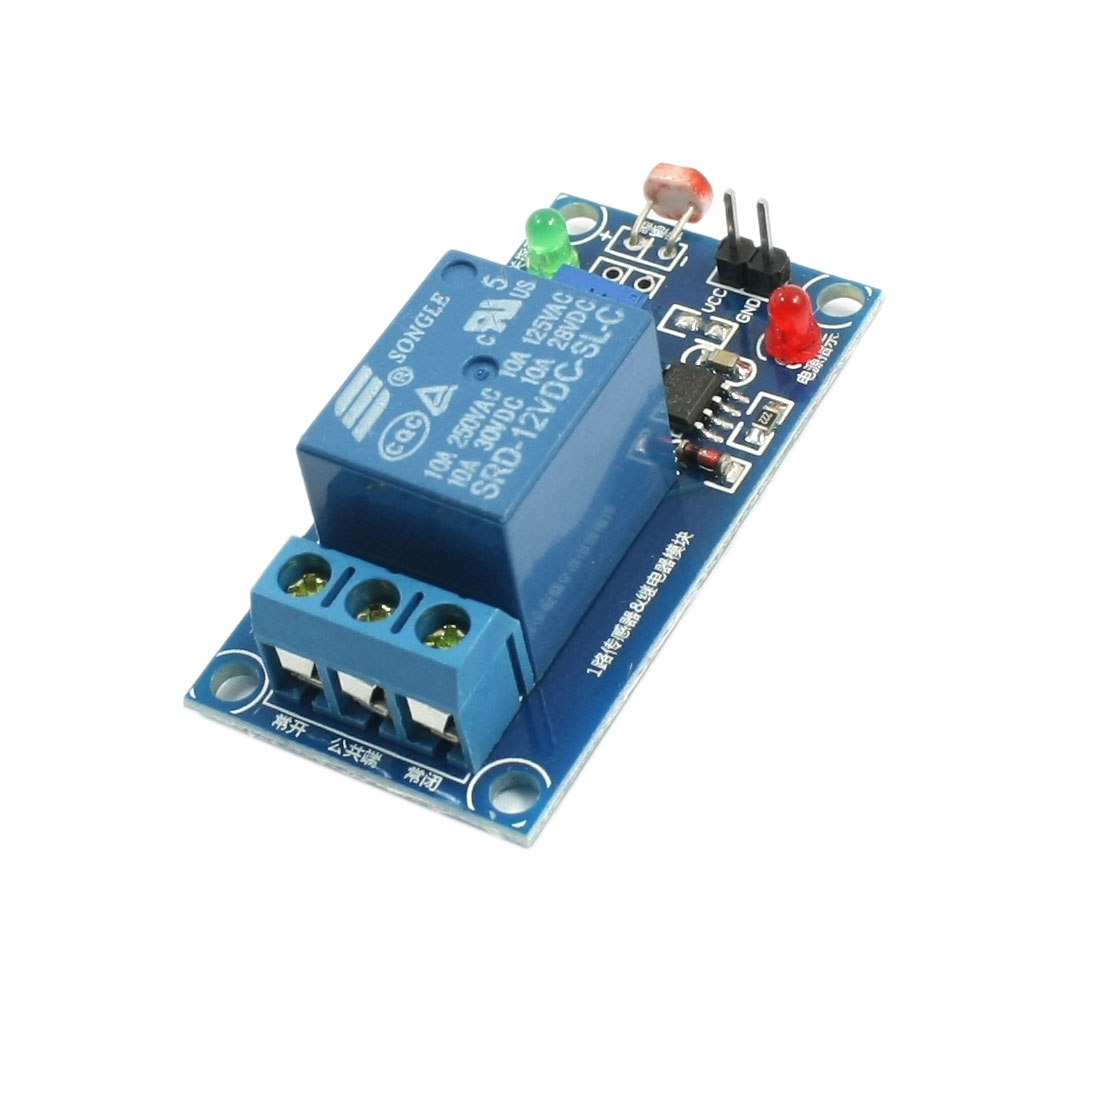 DC12V 1-Channel LED Light Microcomputer Control Photoresistance Sensor Relay PCB Board Module